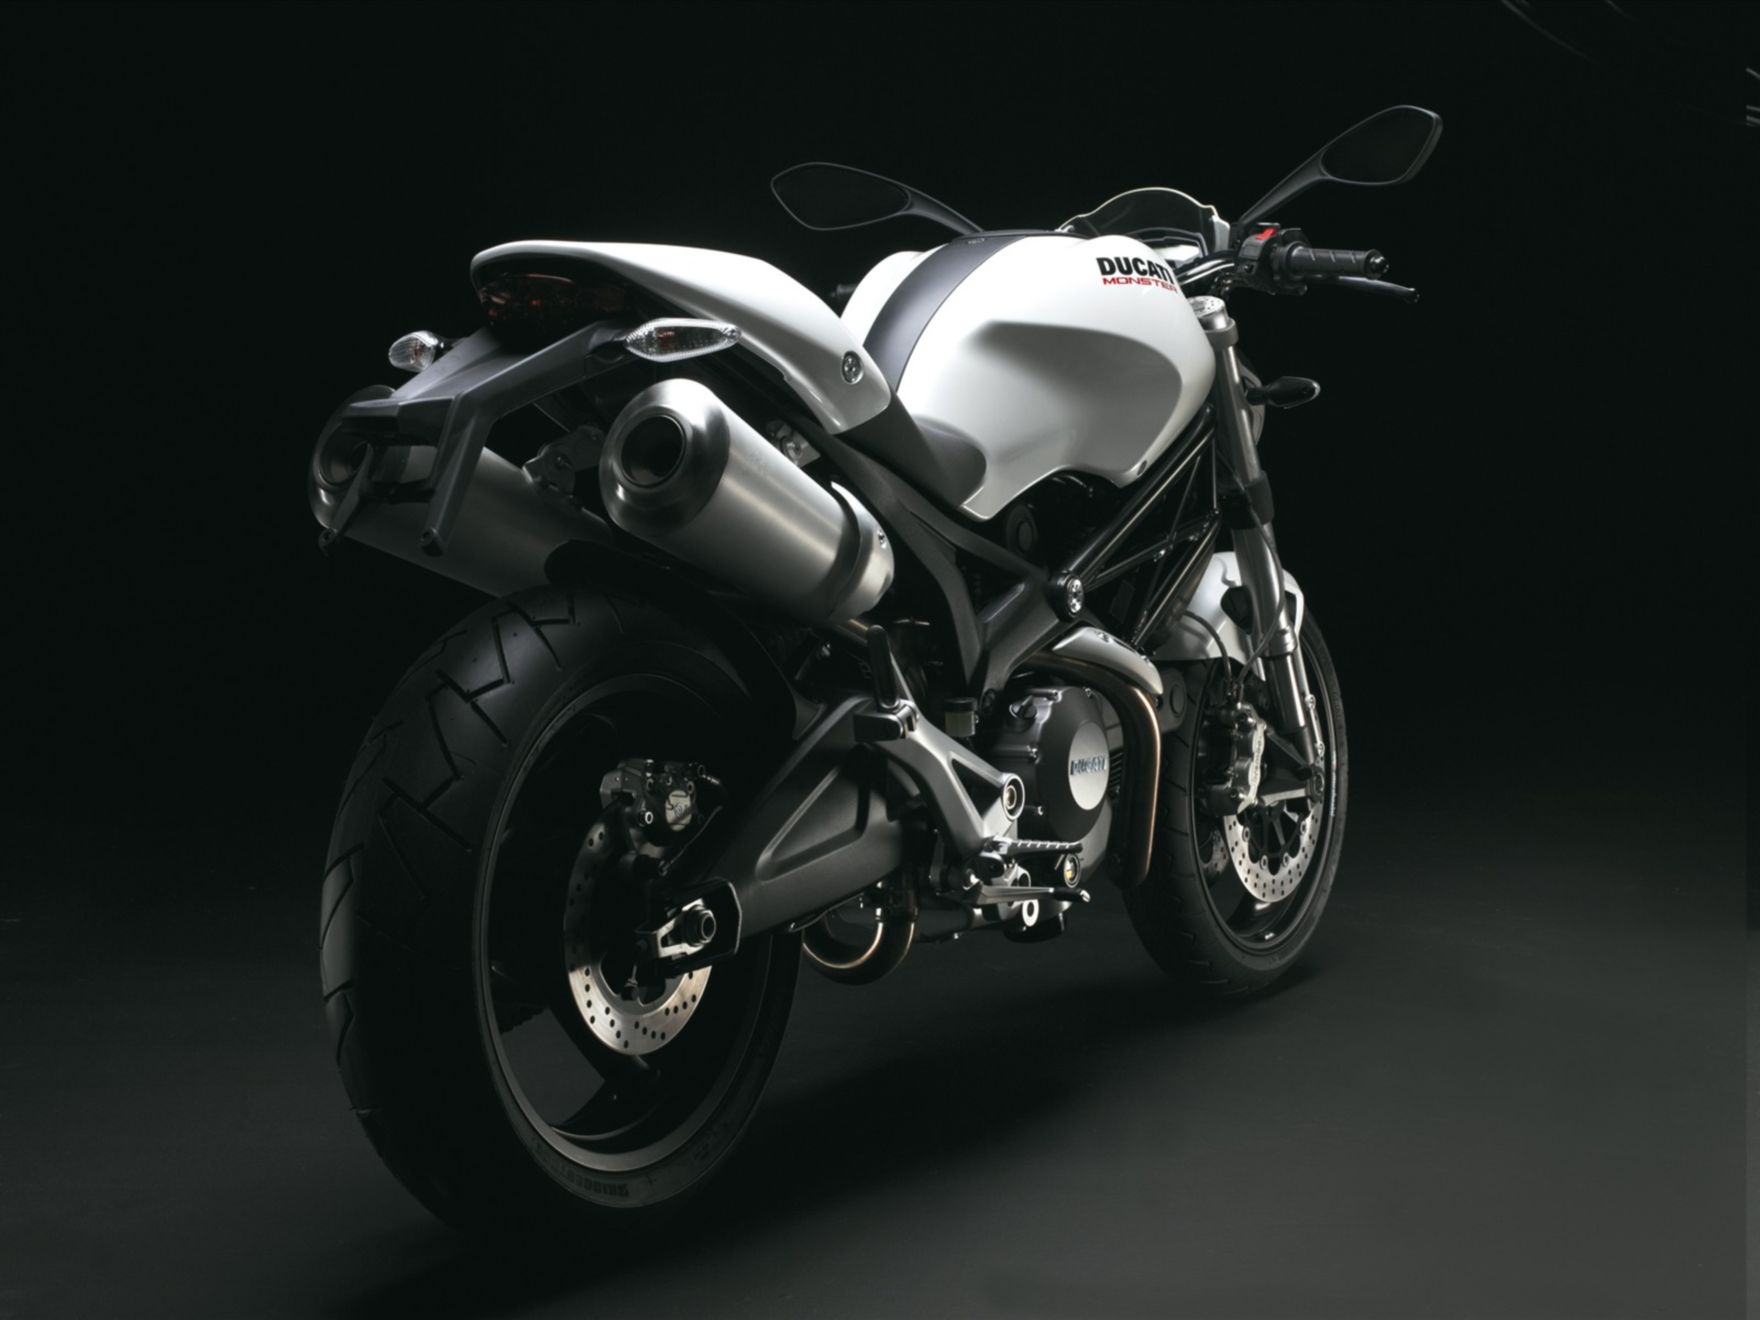 Ducati Monster 696 High Quality Normal Wallpaper